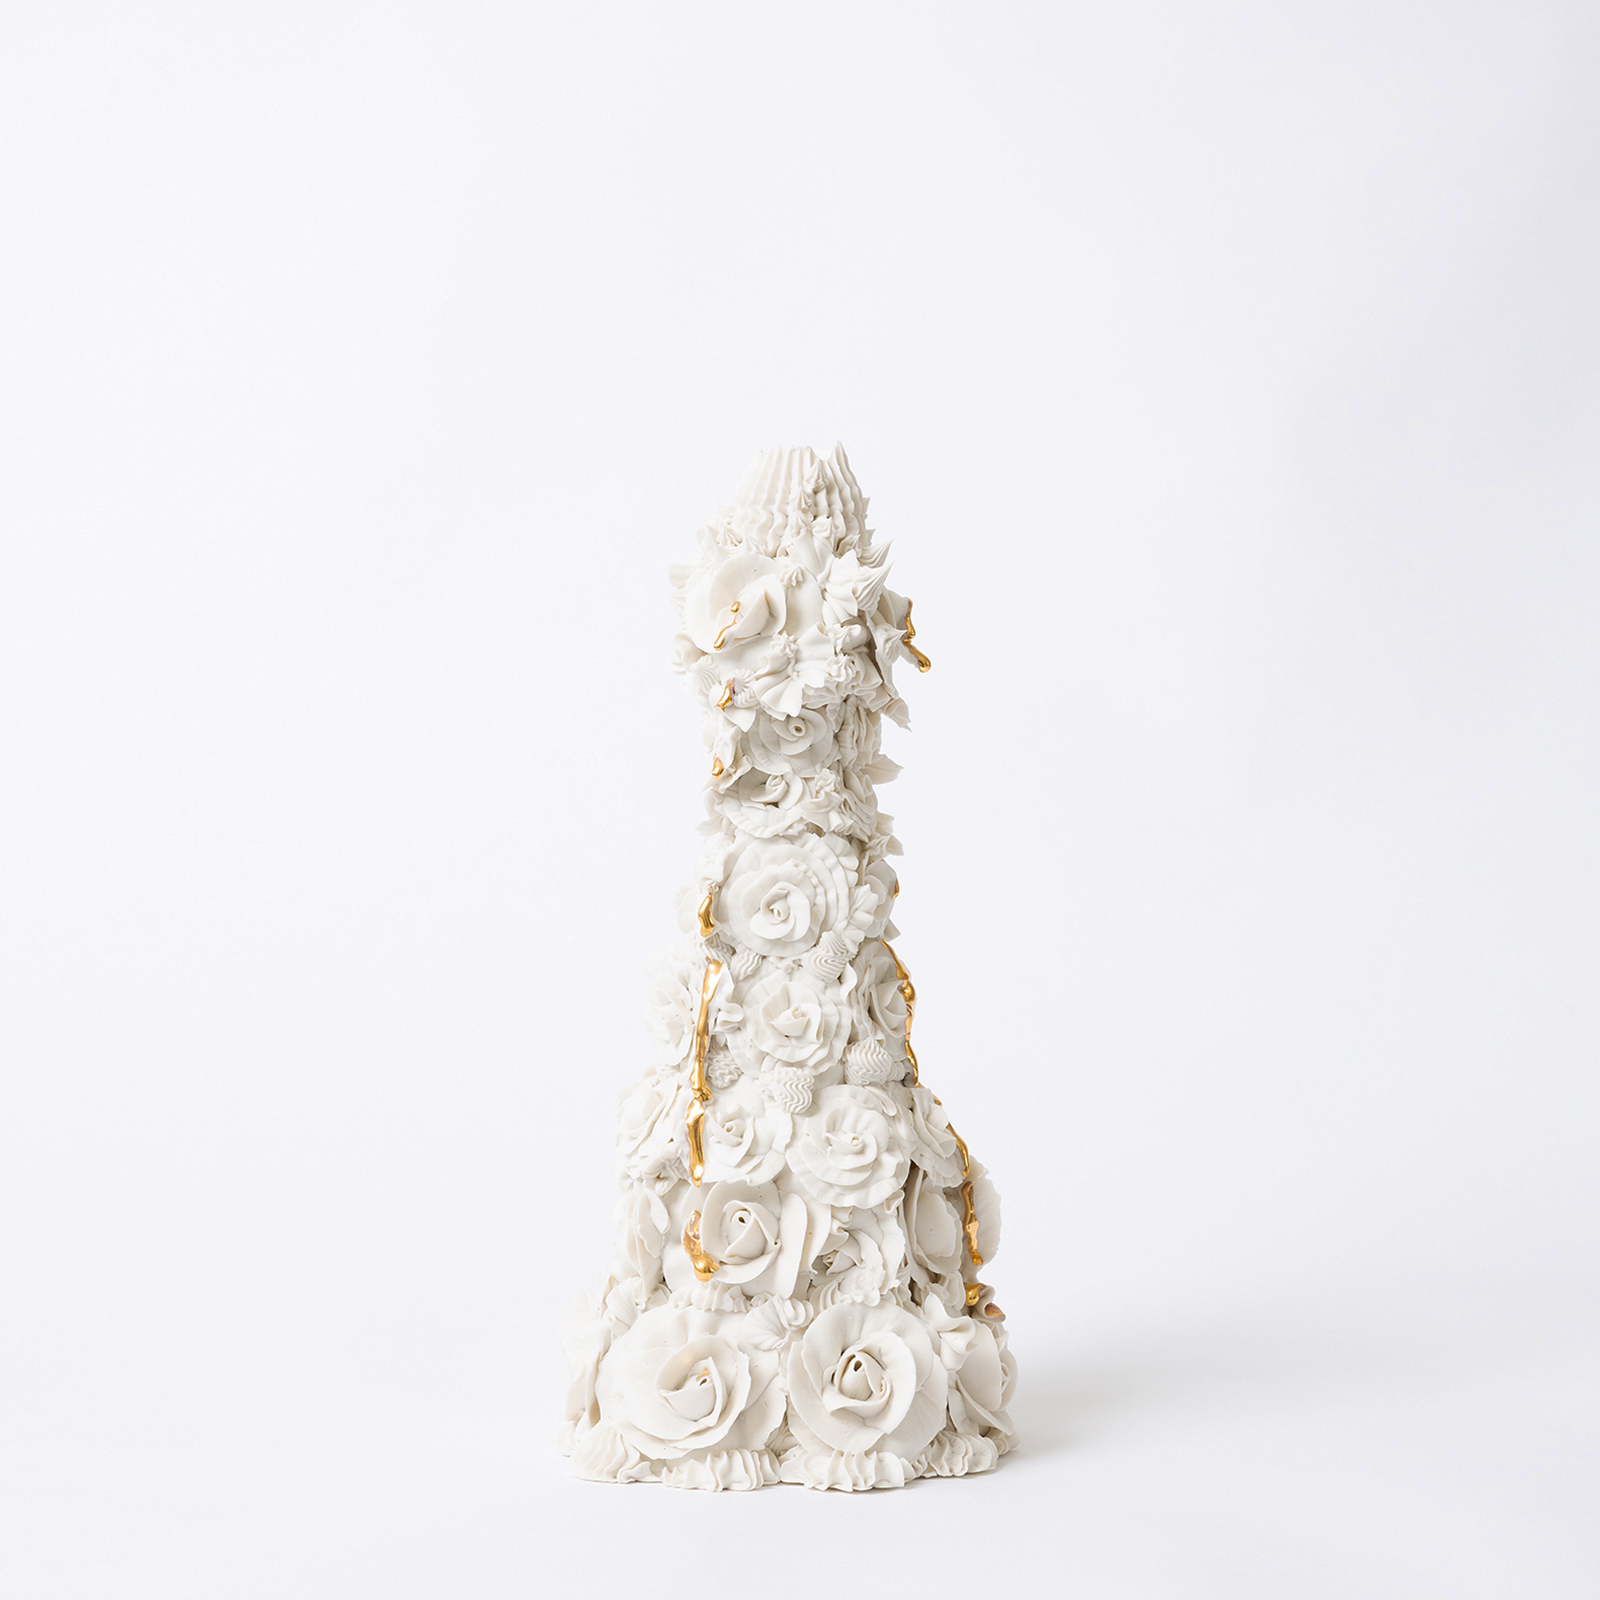 Crying Rose Candelabra In White With Kitsch Tears In Hand Piped Porcelain By Ebony Russell Hero